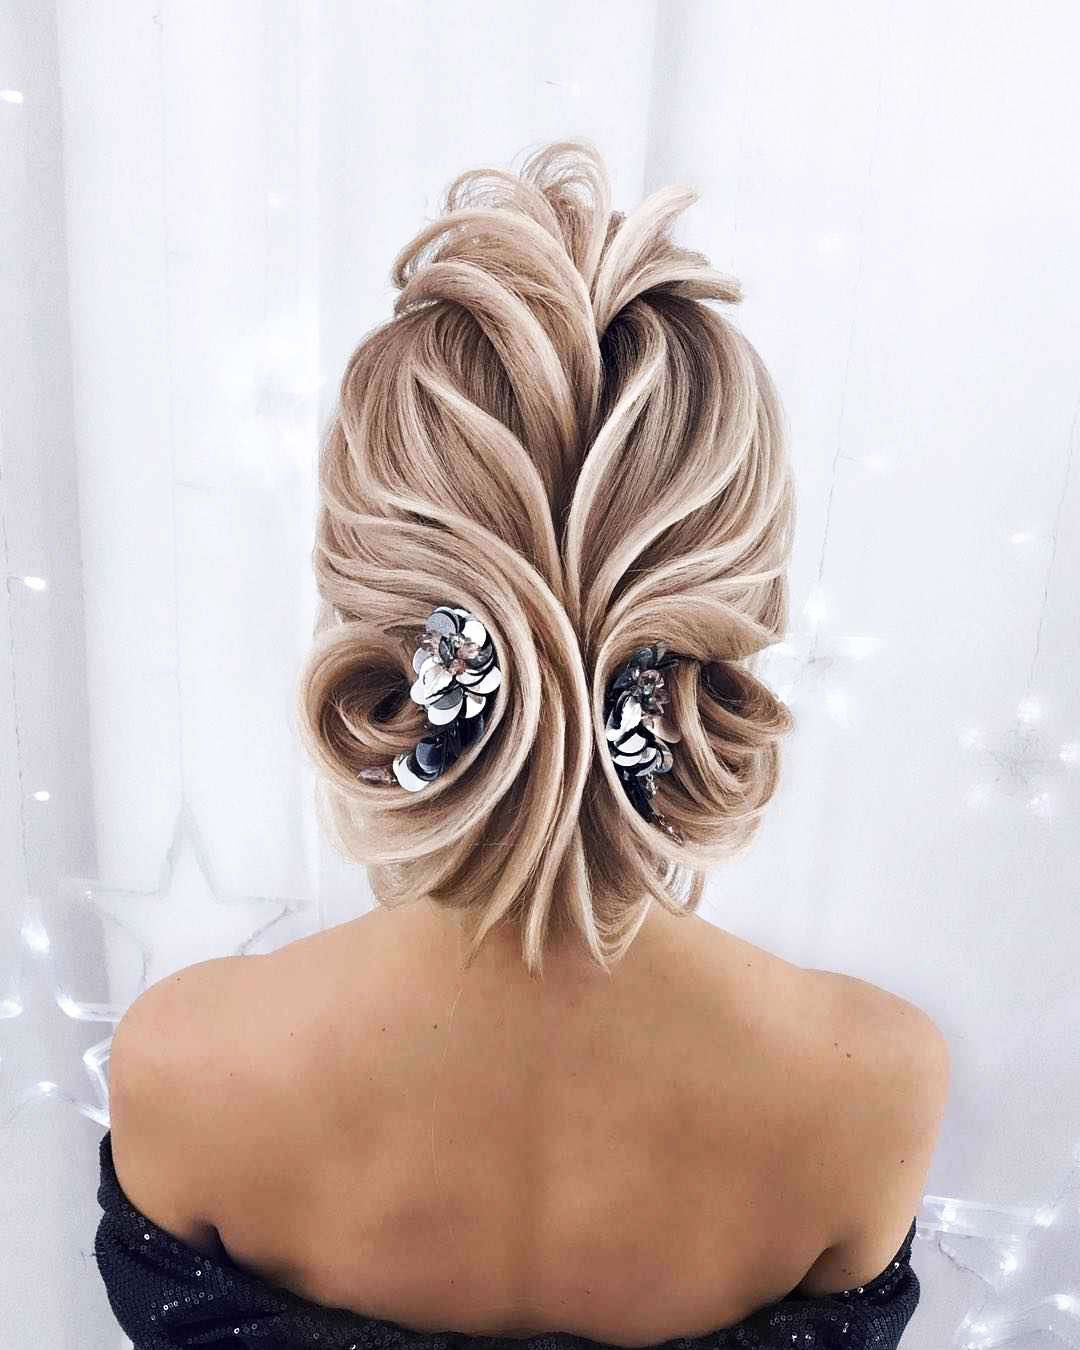 Hairstyles For Prom On Long Hair 2019-2020: Photo 1